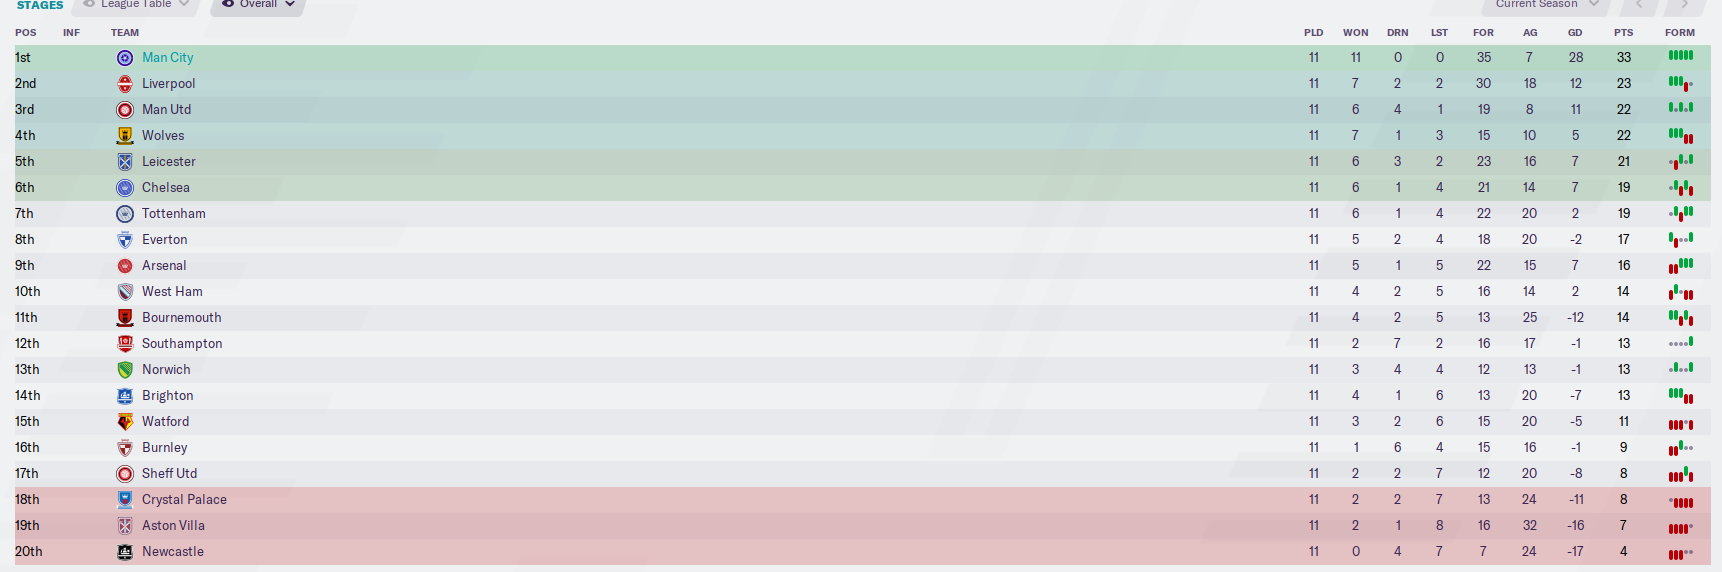 mcfc table.PNG